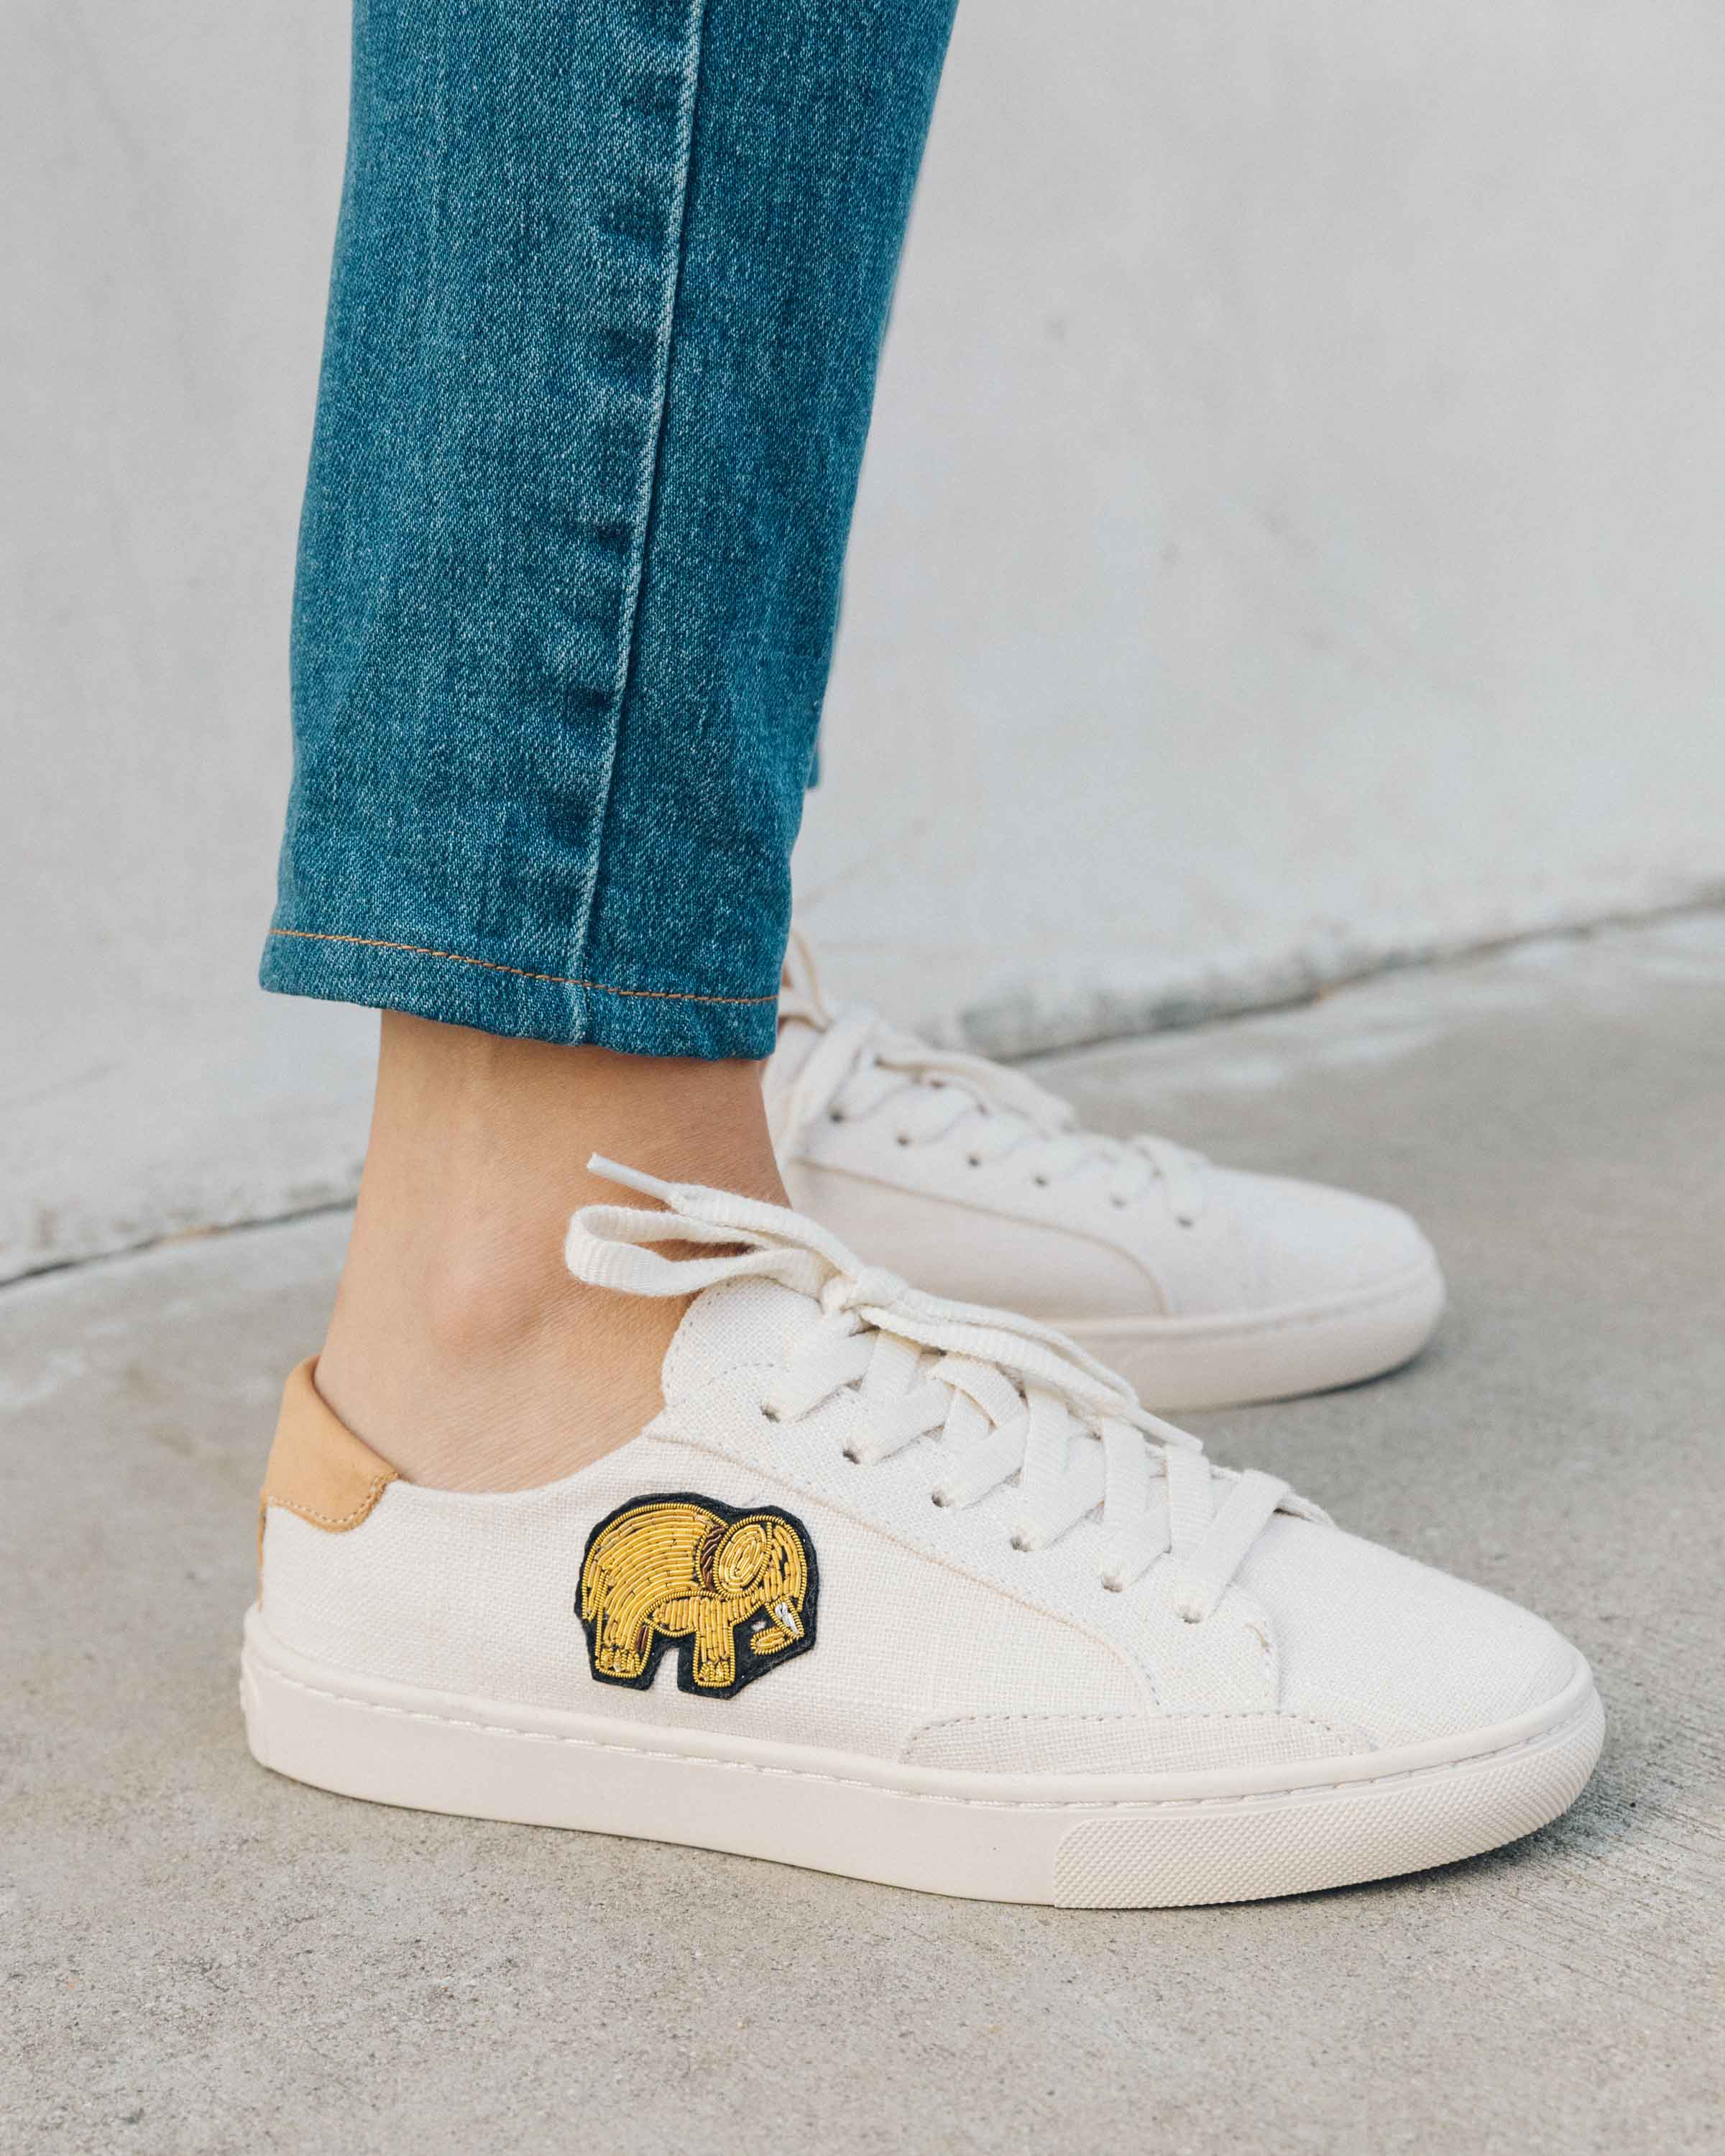 Introducing your new sneaker soulmateDon't be fooled by their charmingly simple exterior of these minimalist sneaks: We lined the sole in super cushy cork that molds to your foot so they're really lightweight and comfortable. Bonus: The coil embroidery hand-done by our team.